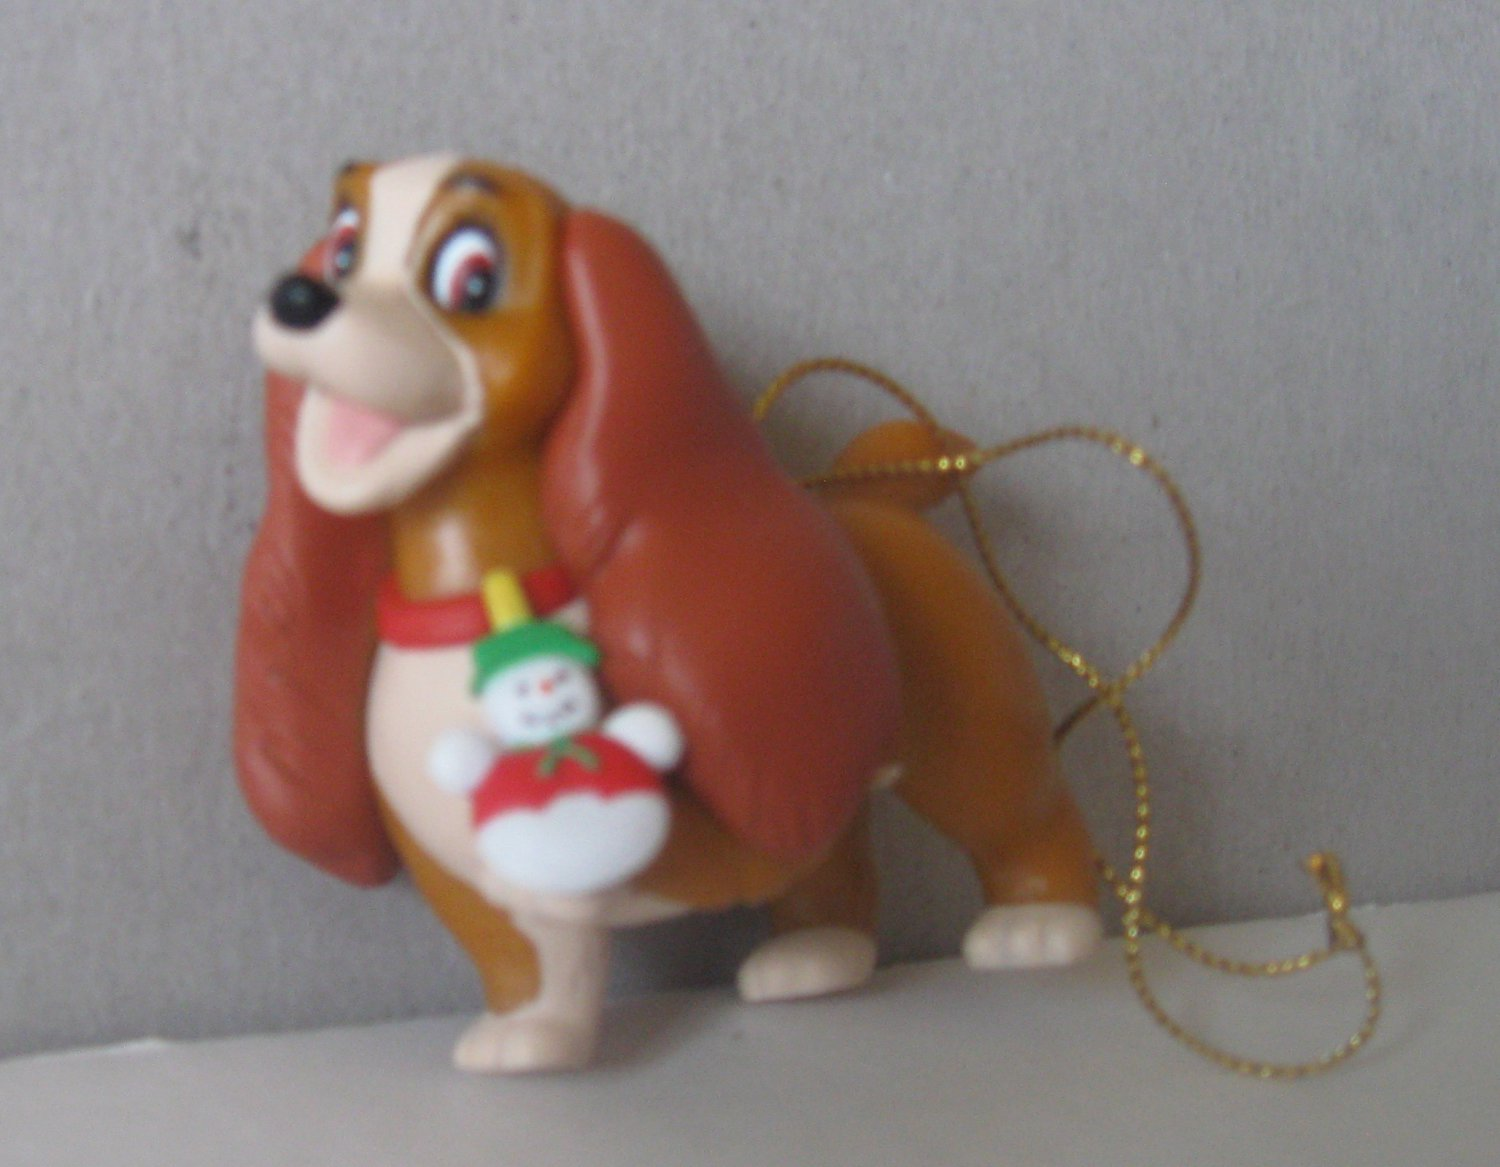 Disney Grolier Lady (Lady & the tramp) Collectible Christmas Ornament